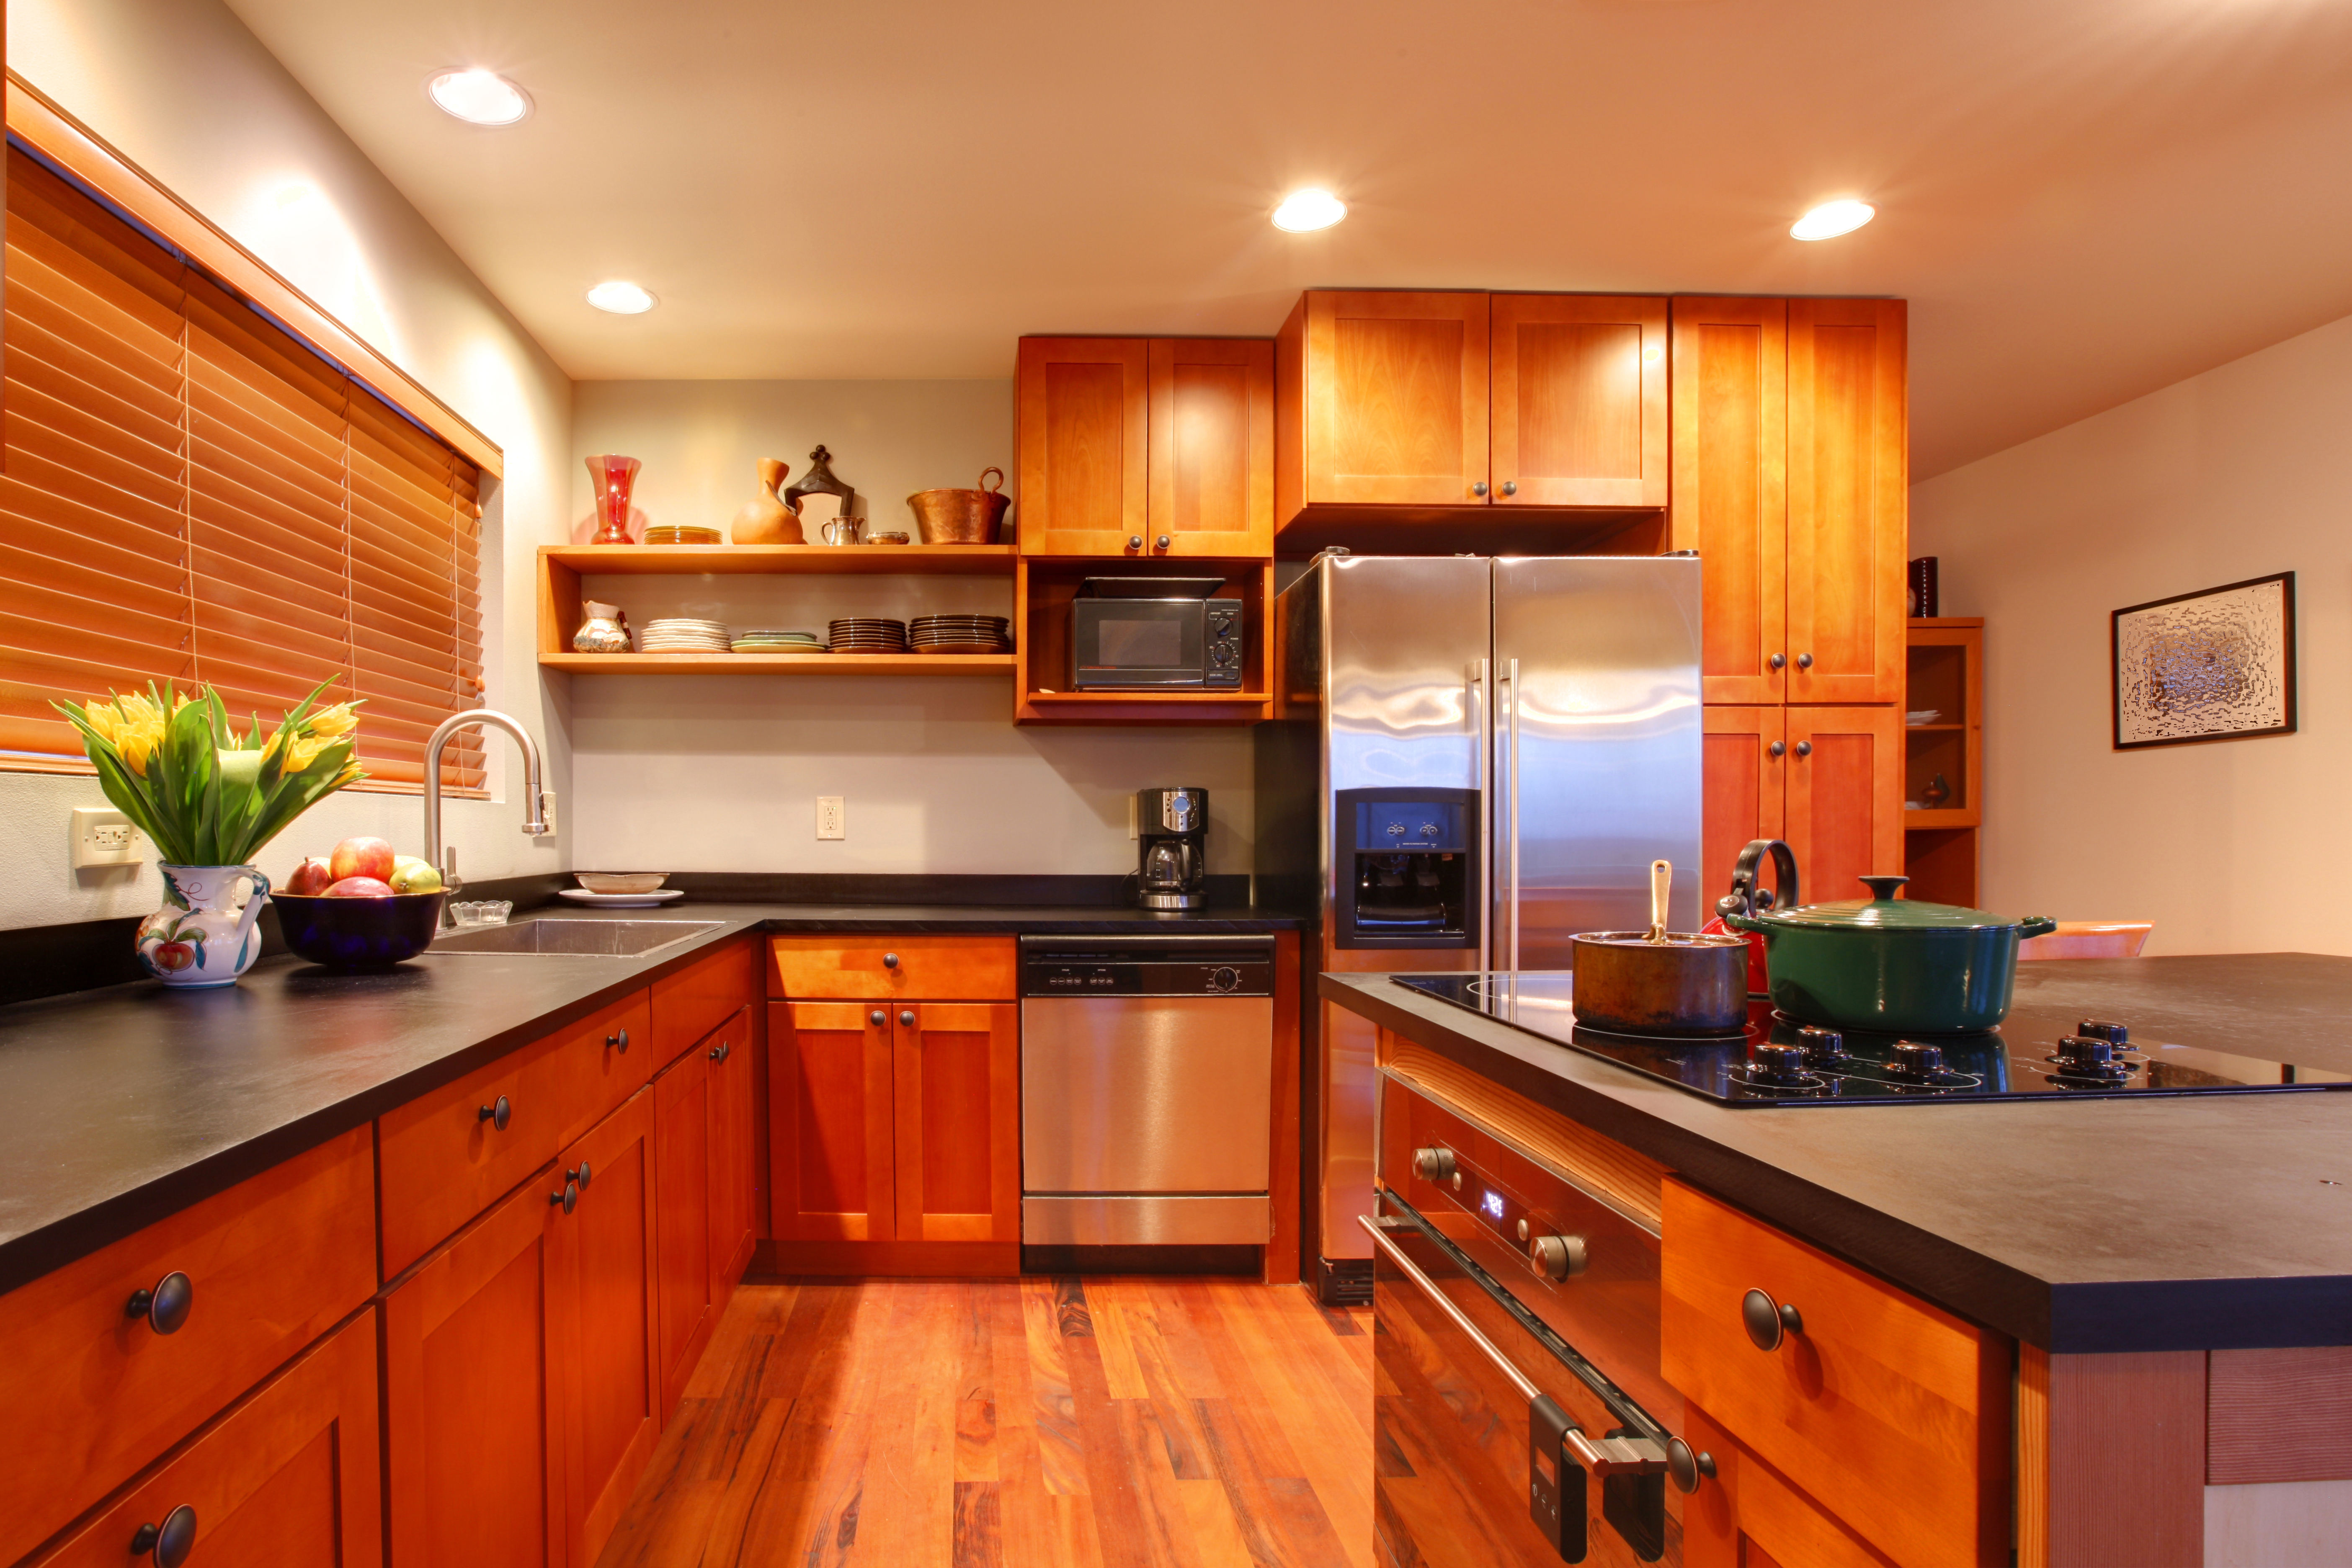 A kitchen with solid wood, traditional shaker cabinets